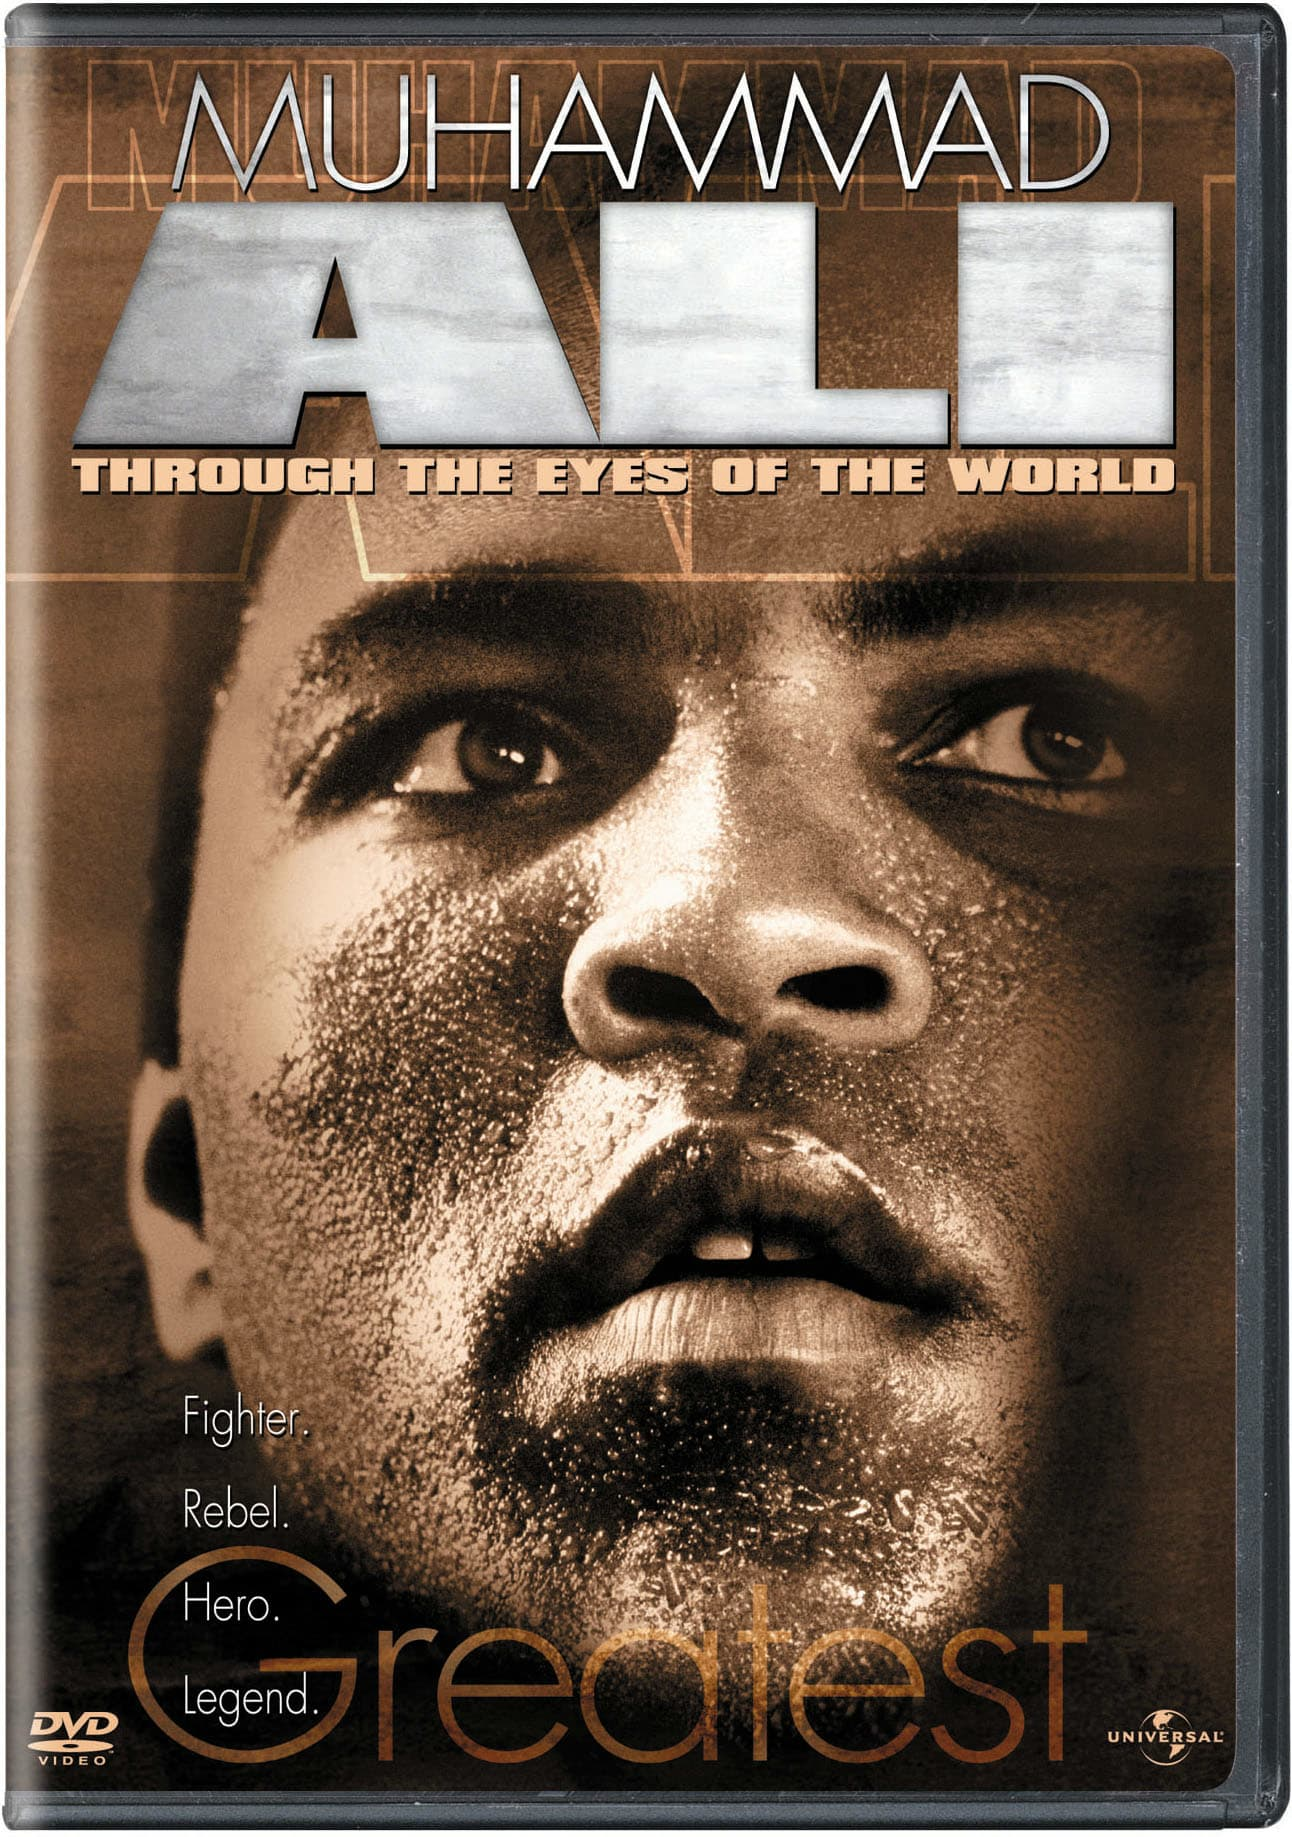 Muhammad Ali: Through the Eyes of the World [DVD]